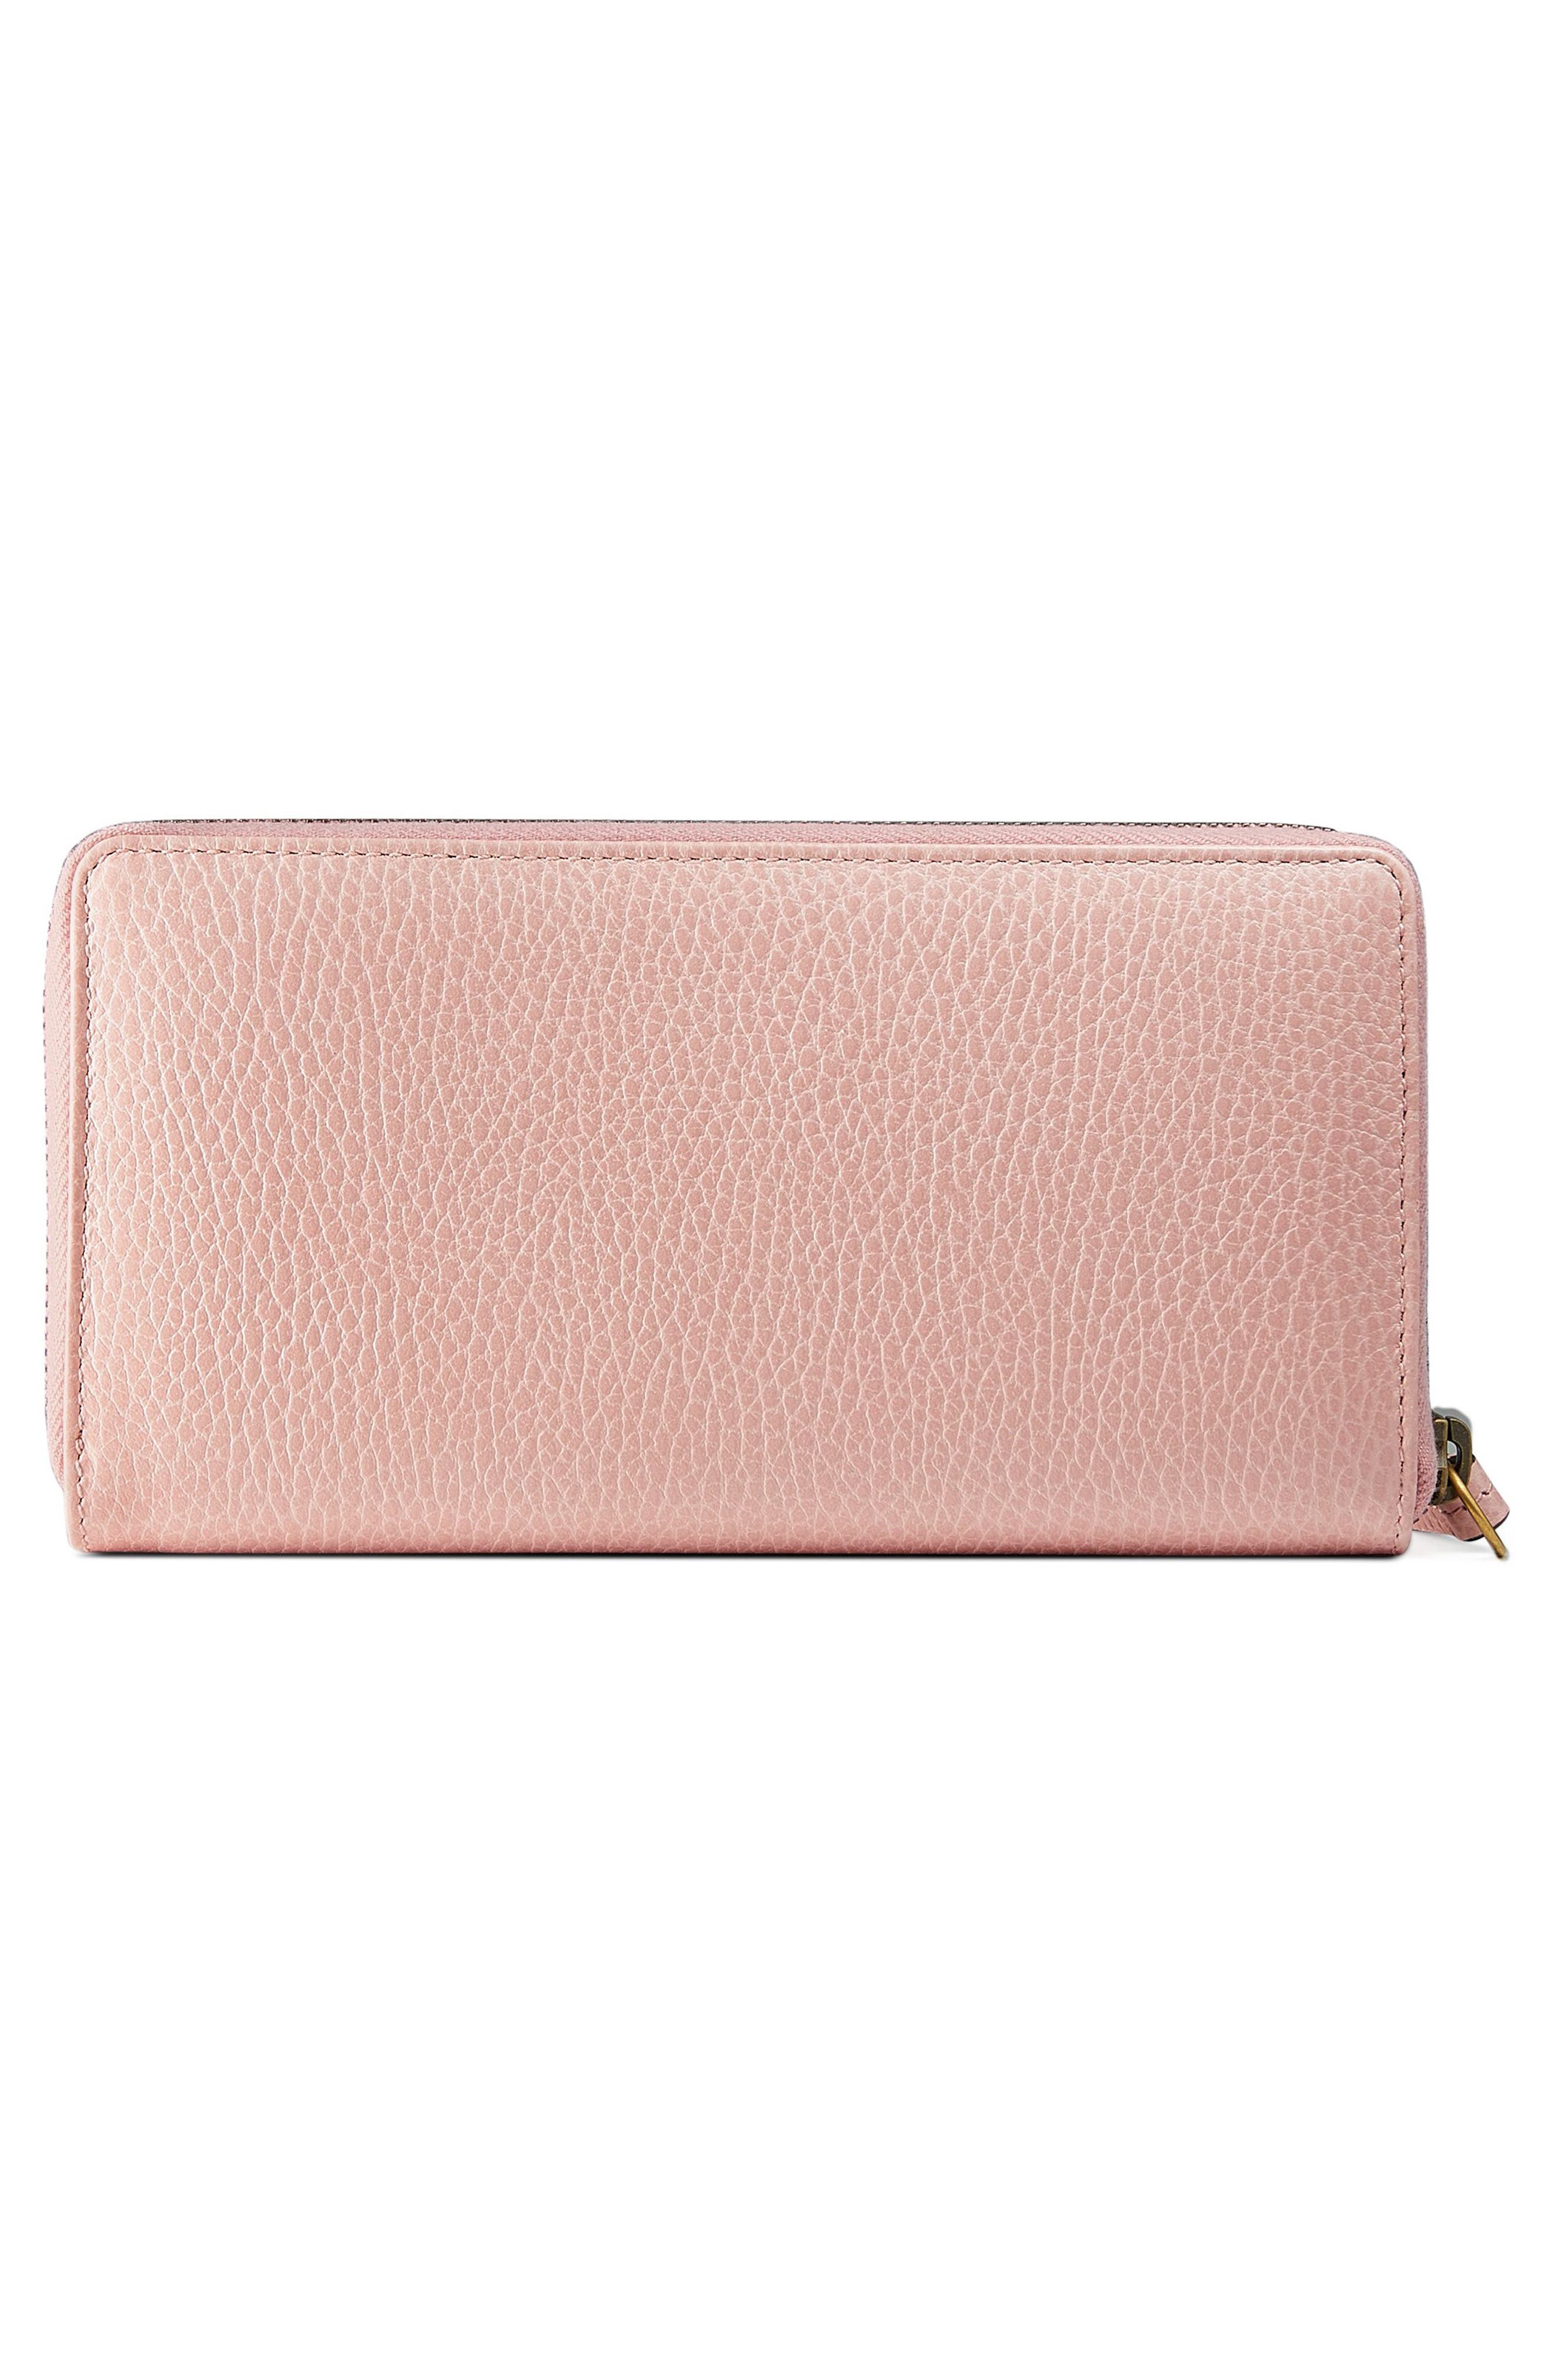 GUCCI, Farfalla Zip Around Leather Wallet, Alternate thumbnail 3, color, PERFECT PINK/ CRYSTAL